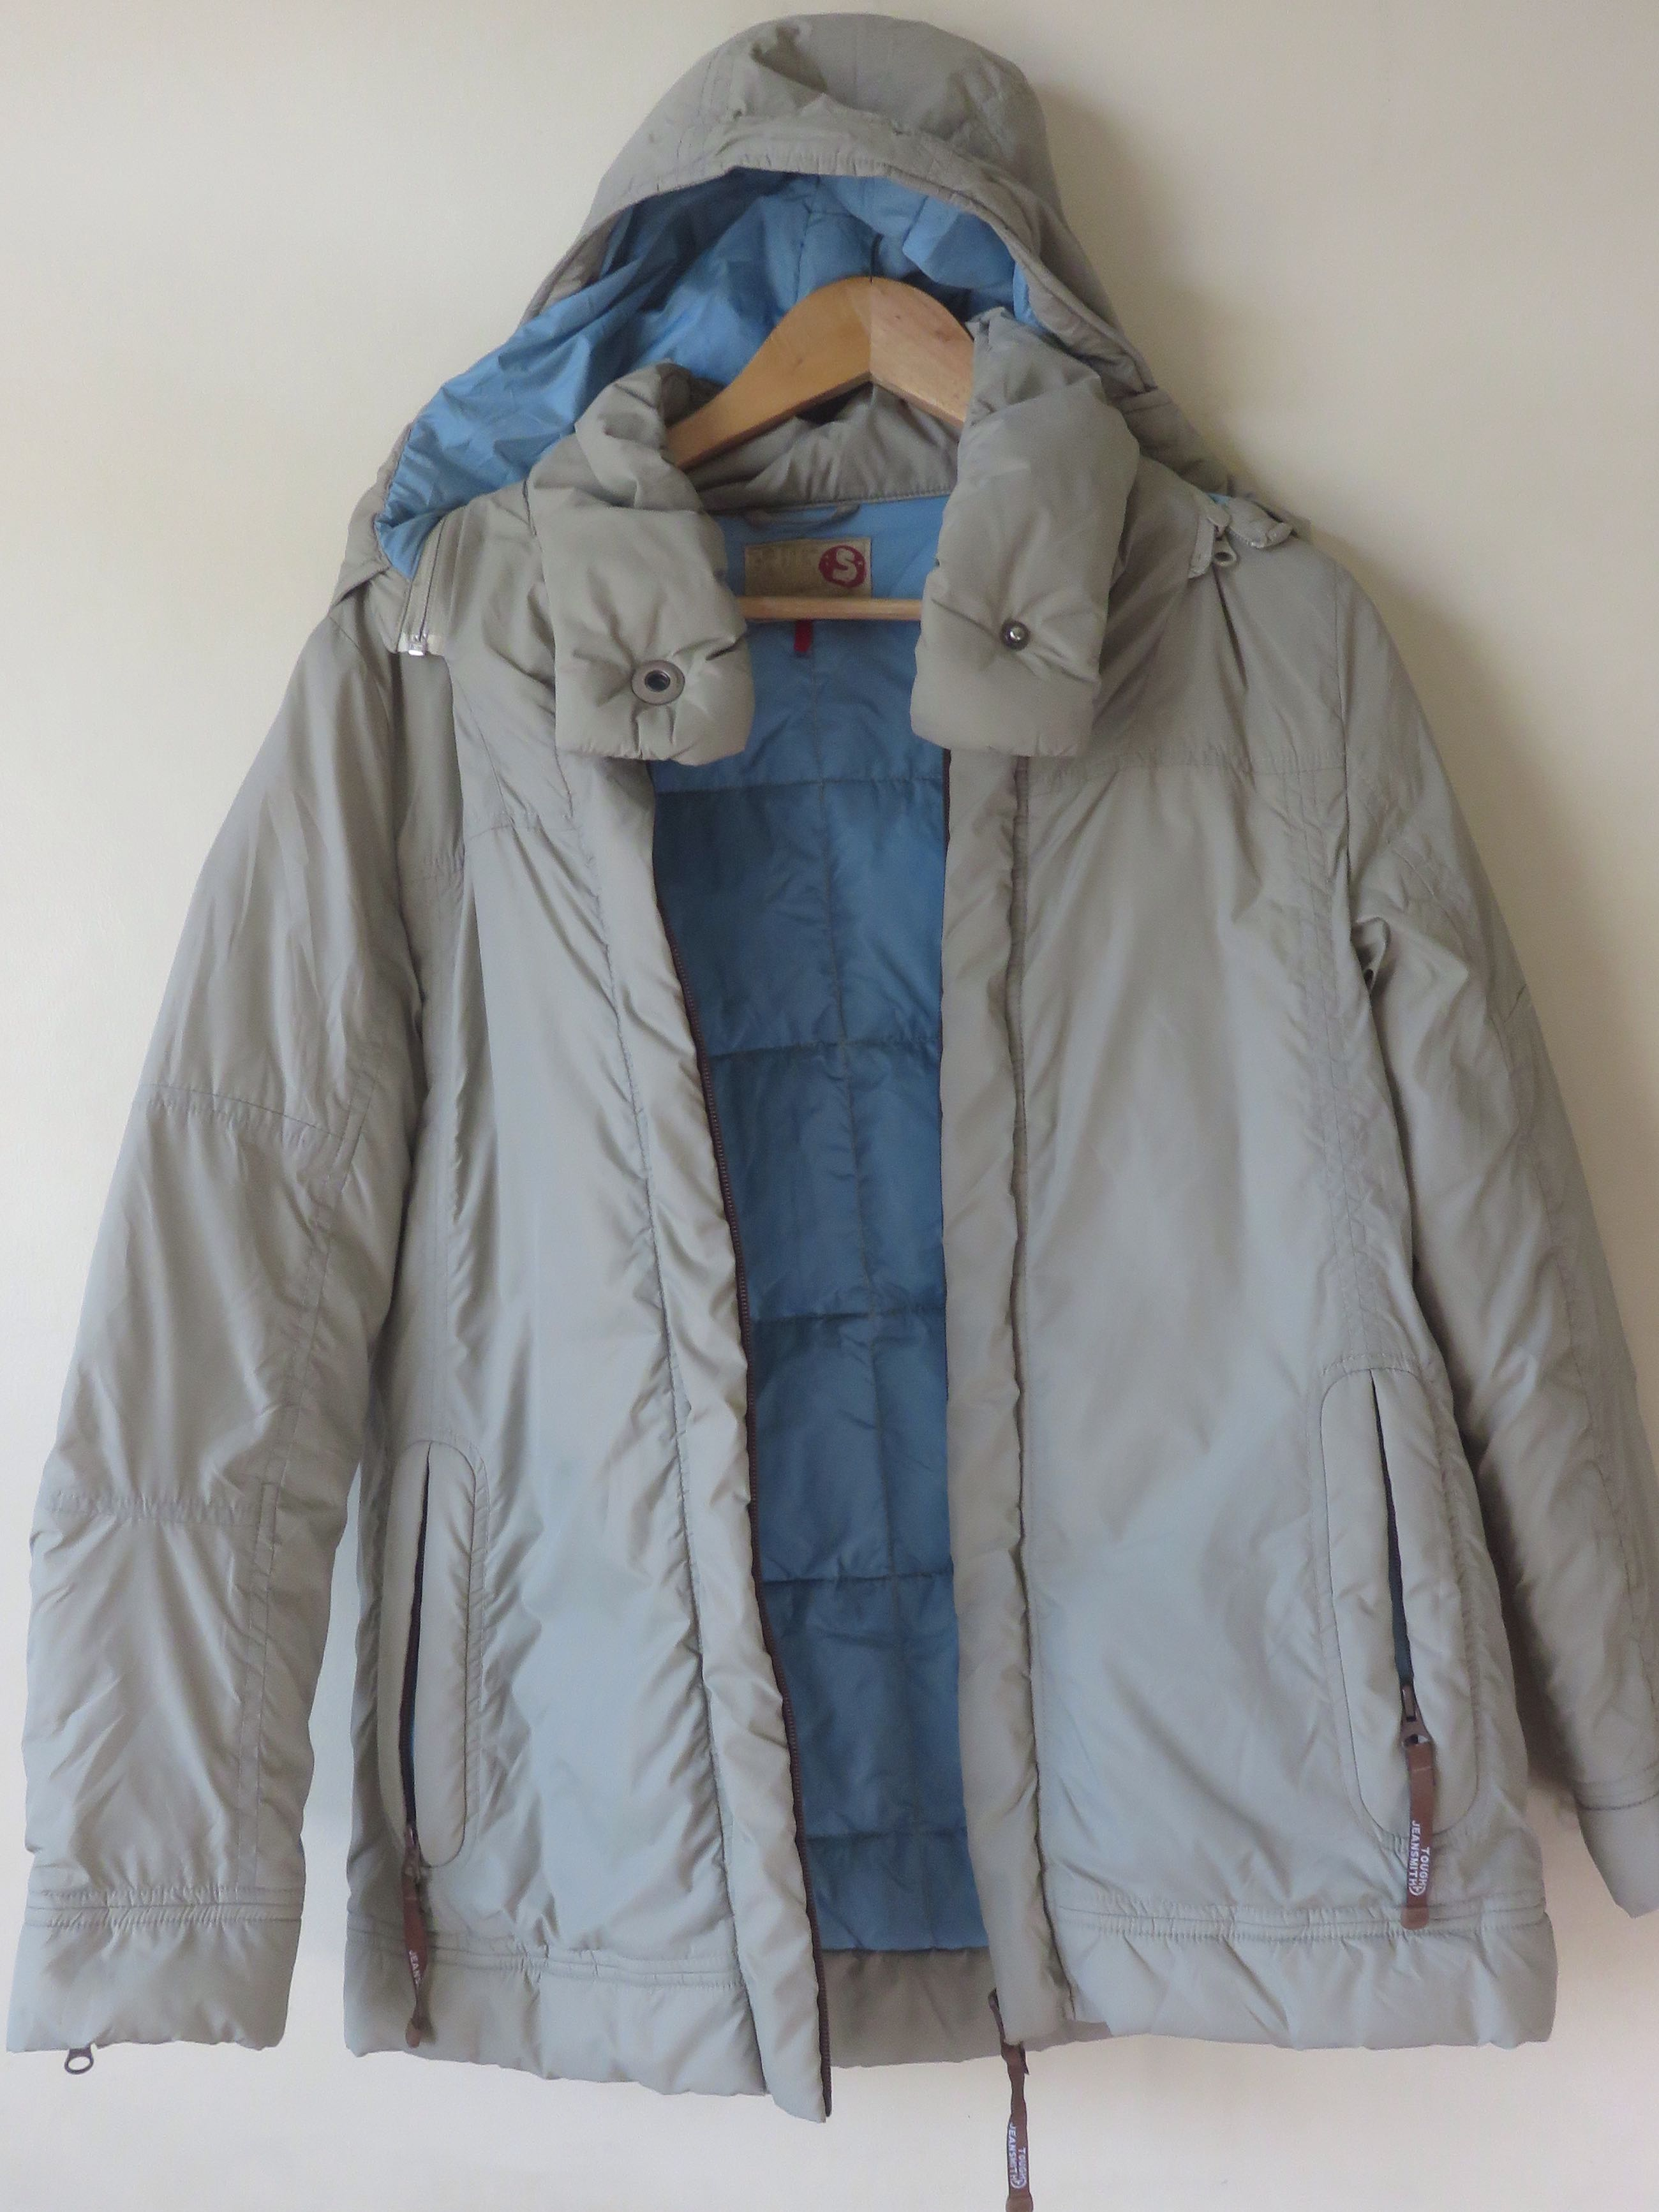 Tough Jeansmith Authentic Thermal Jacket